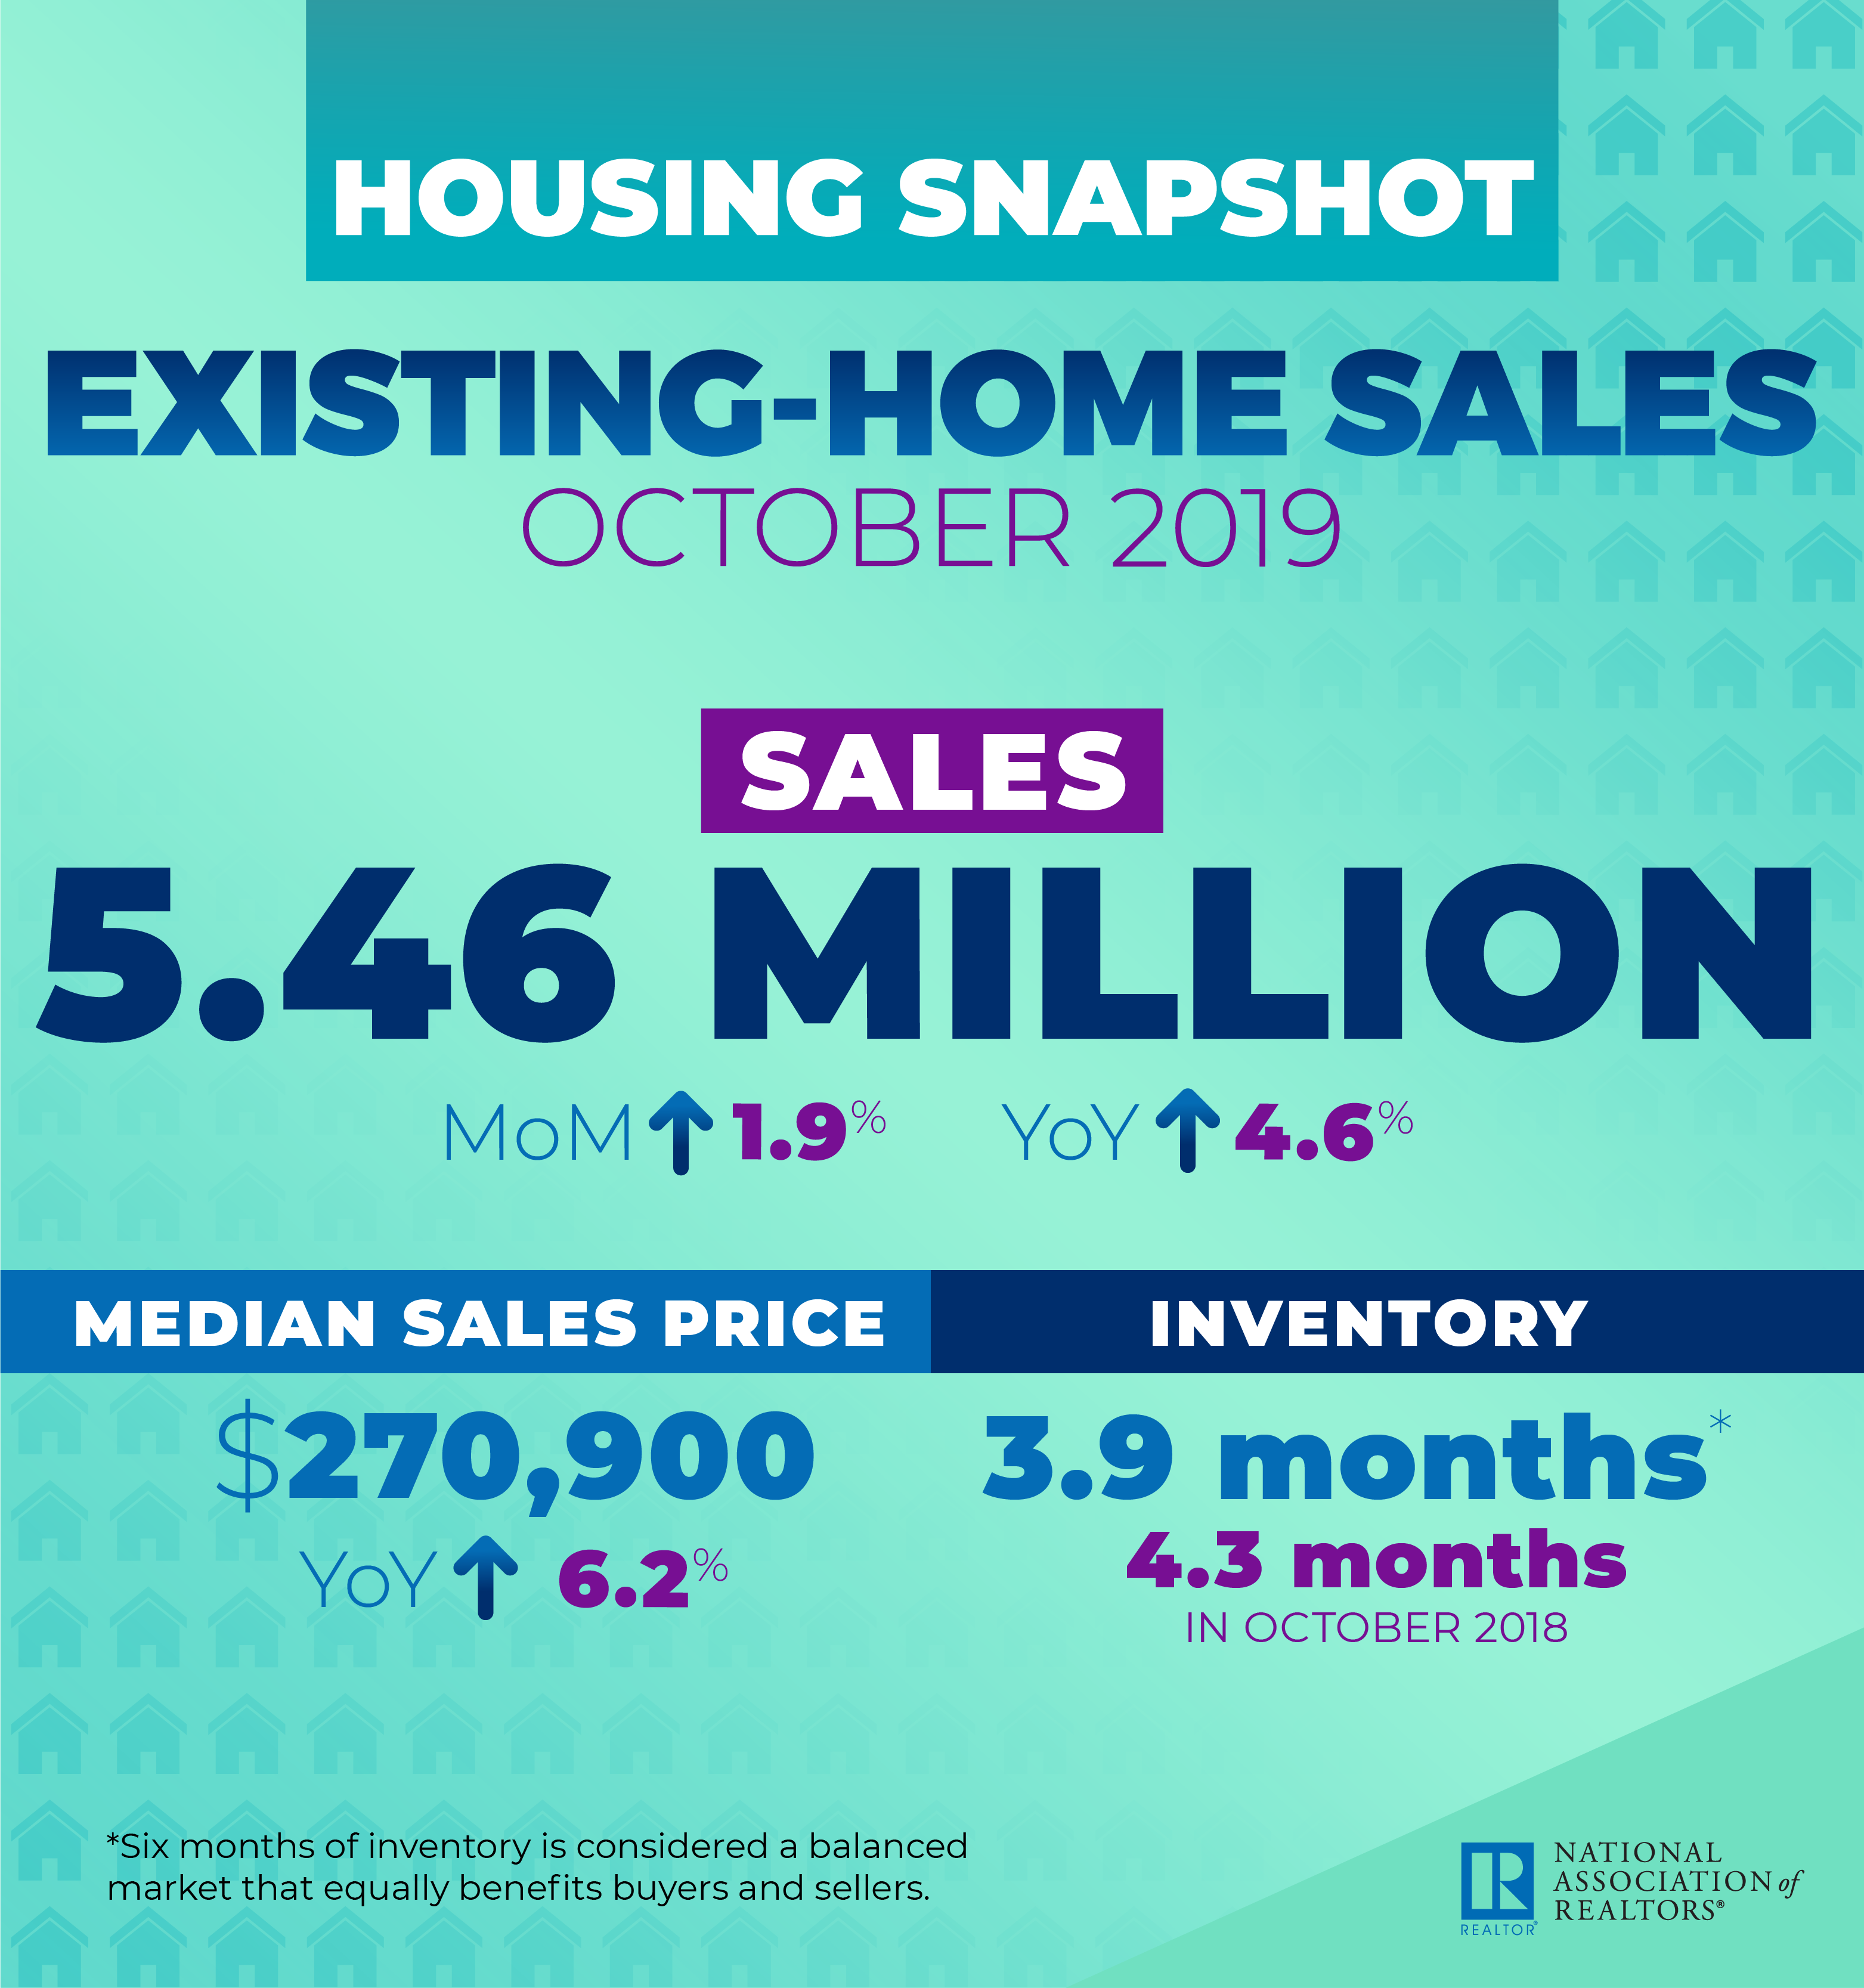 Total existing-home sales during October were up by 1.9 percent from September to a seasonally-adjusted annual rate of 5.46 million